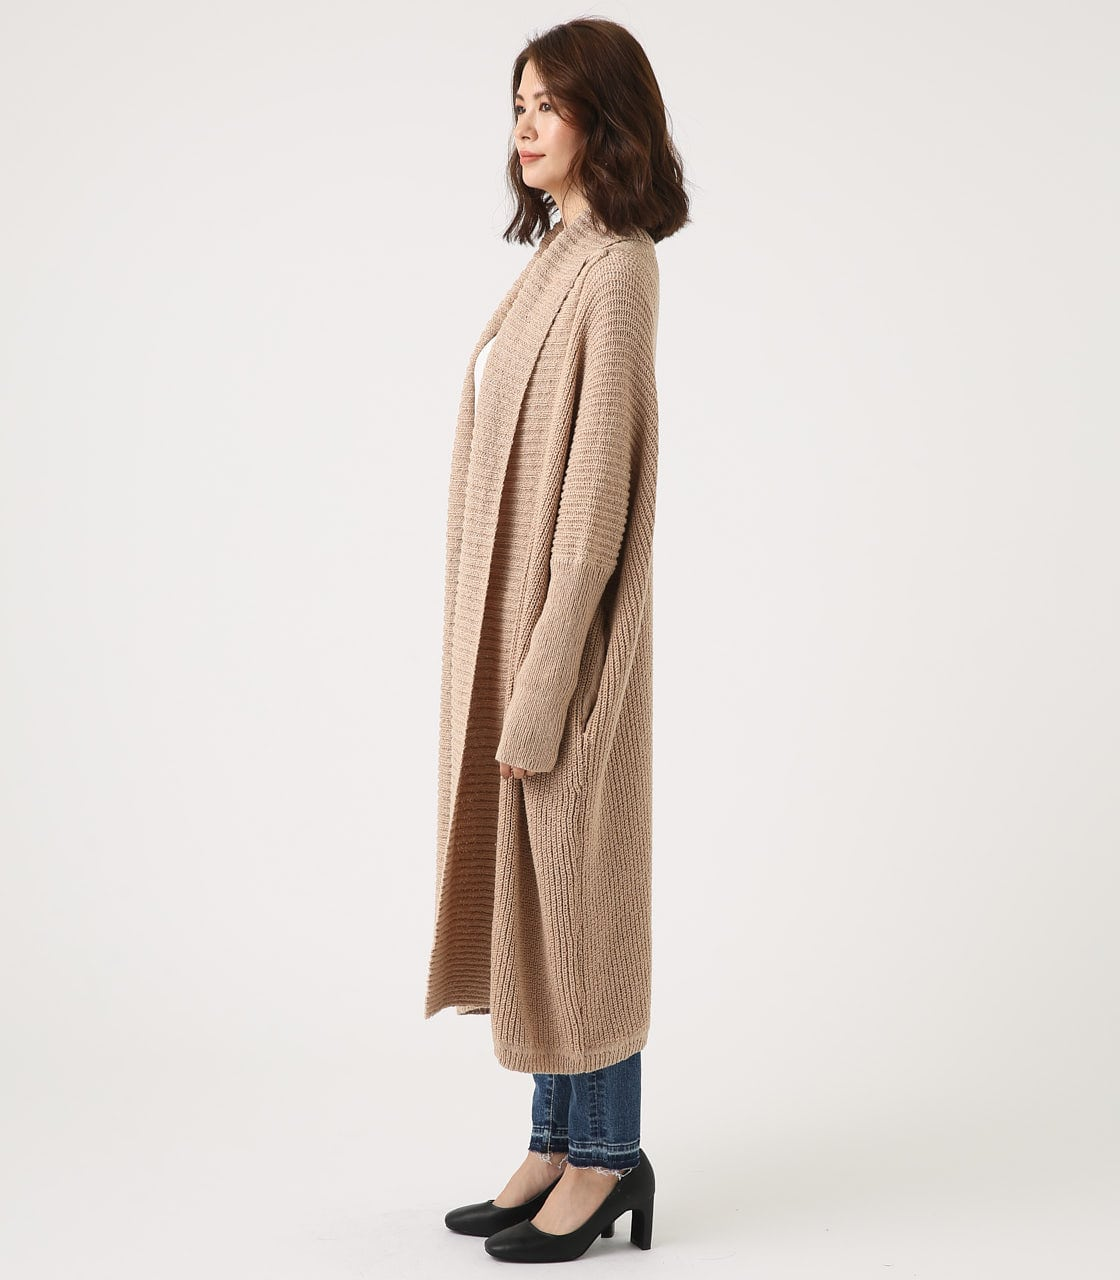 BIG SHAWL TOPPER CARDIGAN 詳細画像 BEG 6